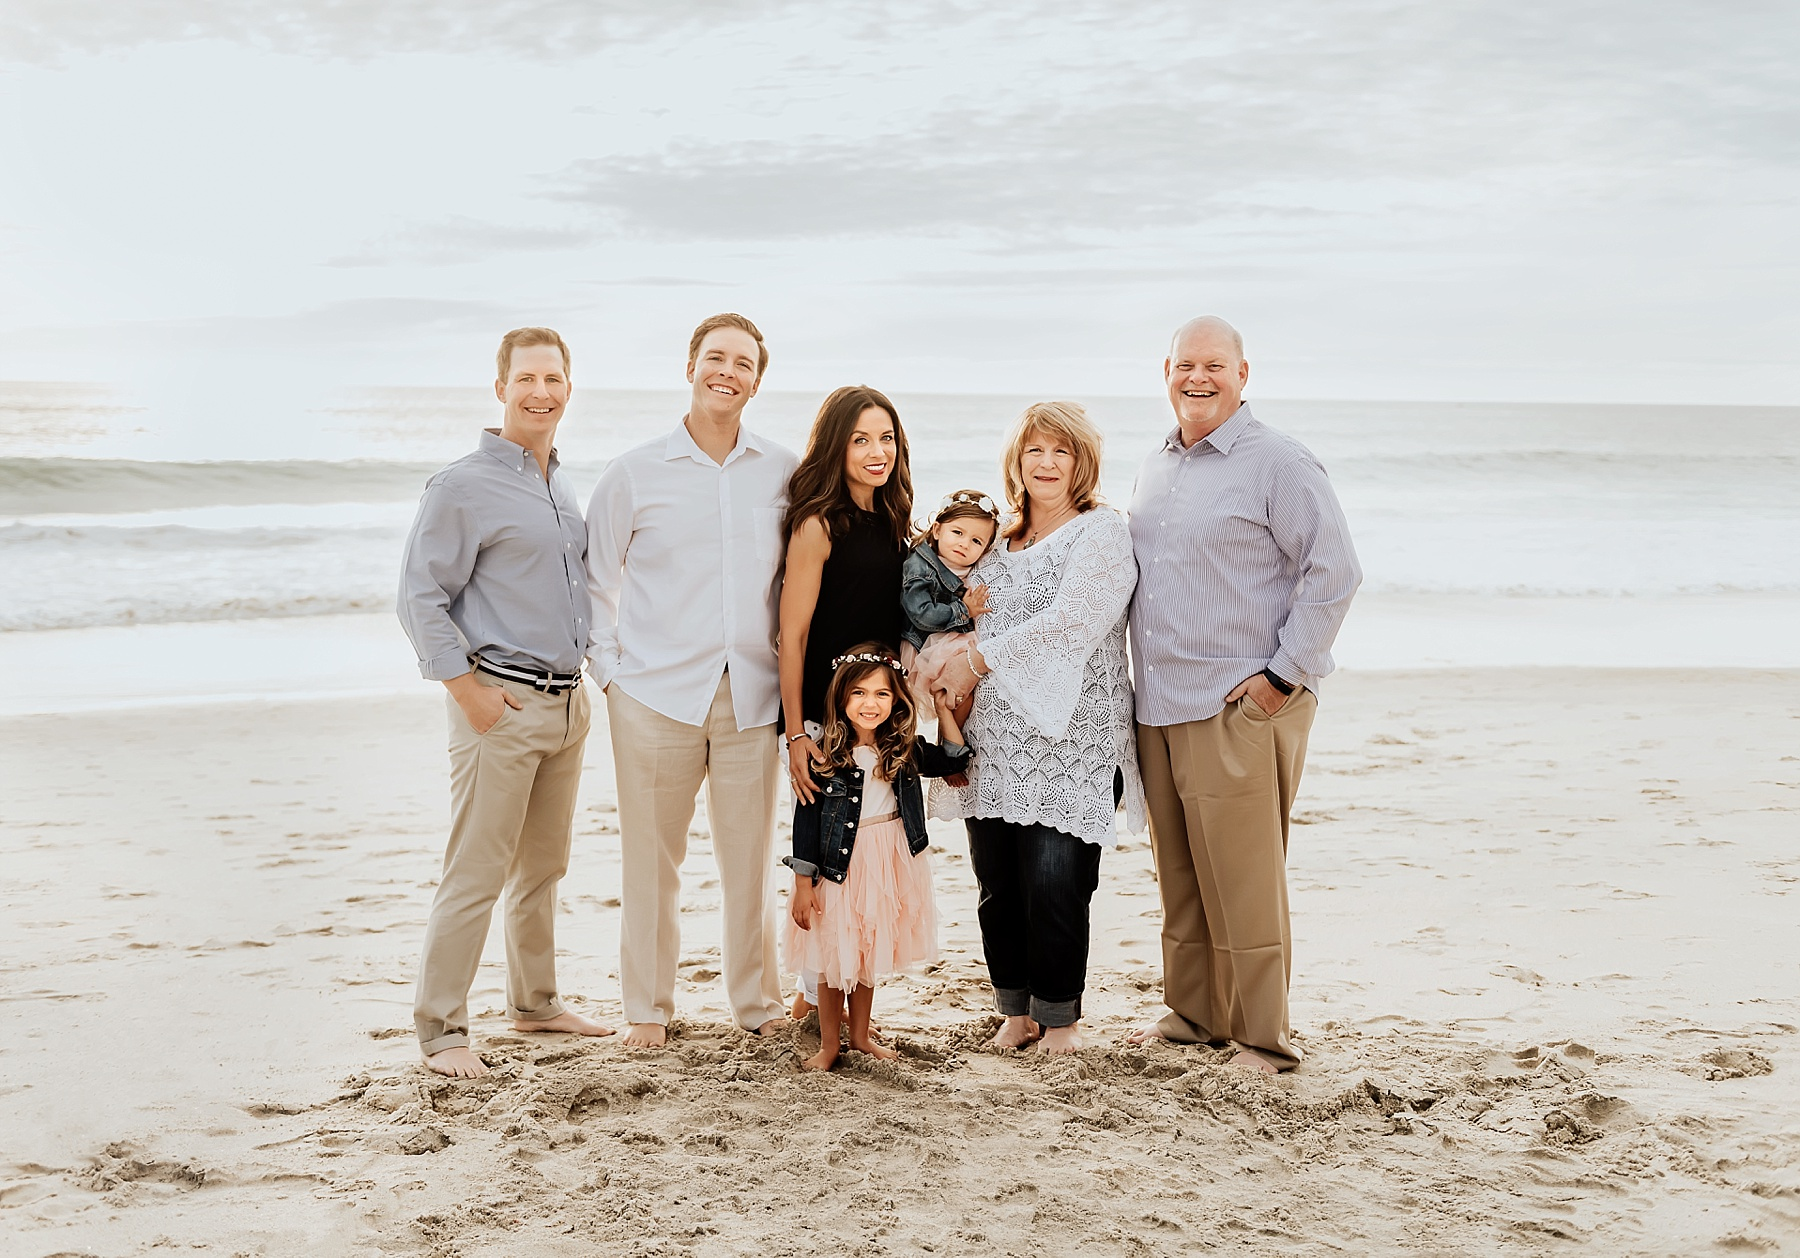 carlsbad family beach pictures extended family